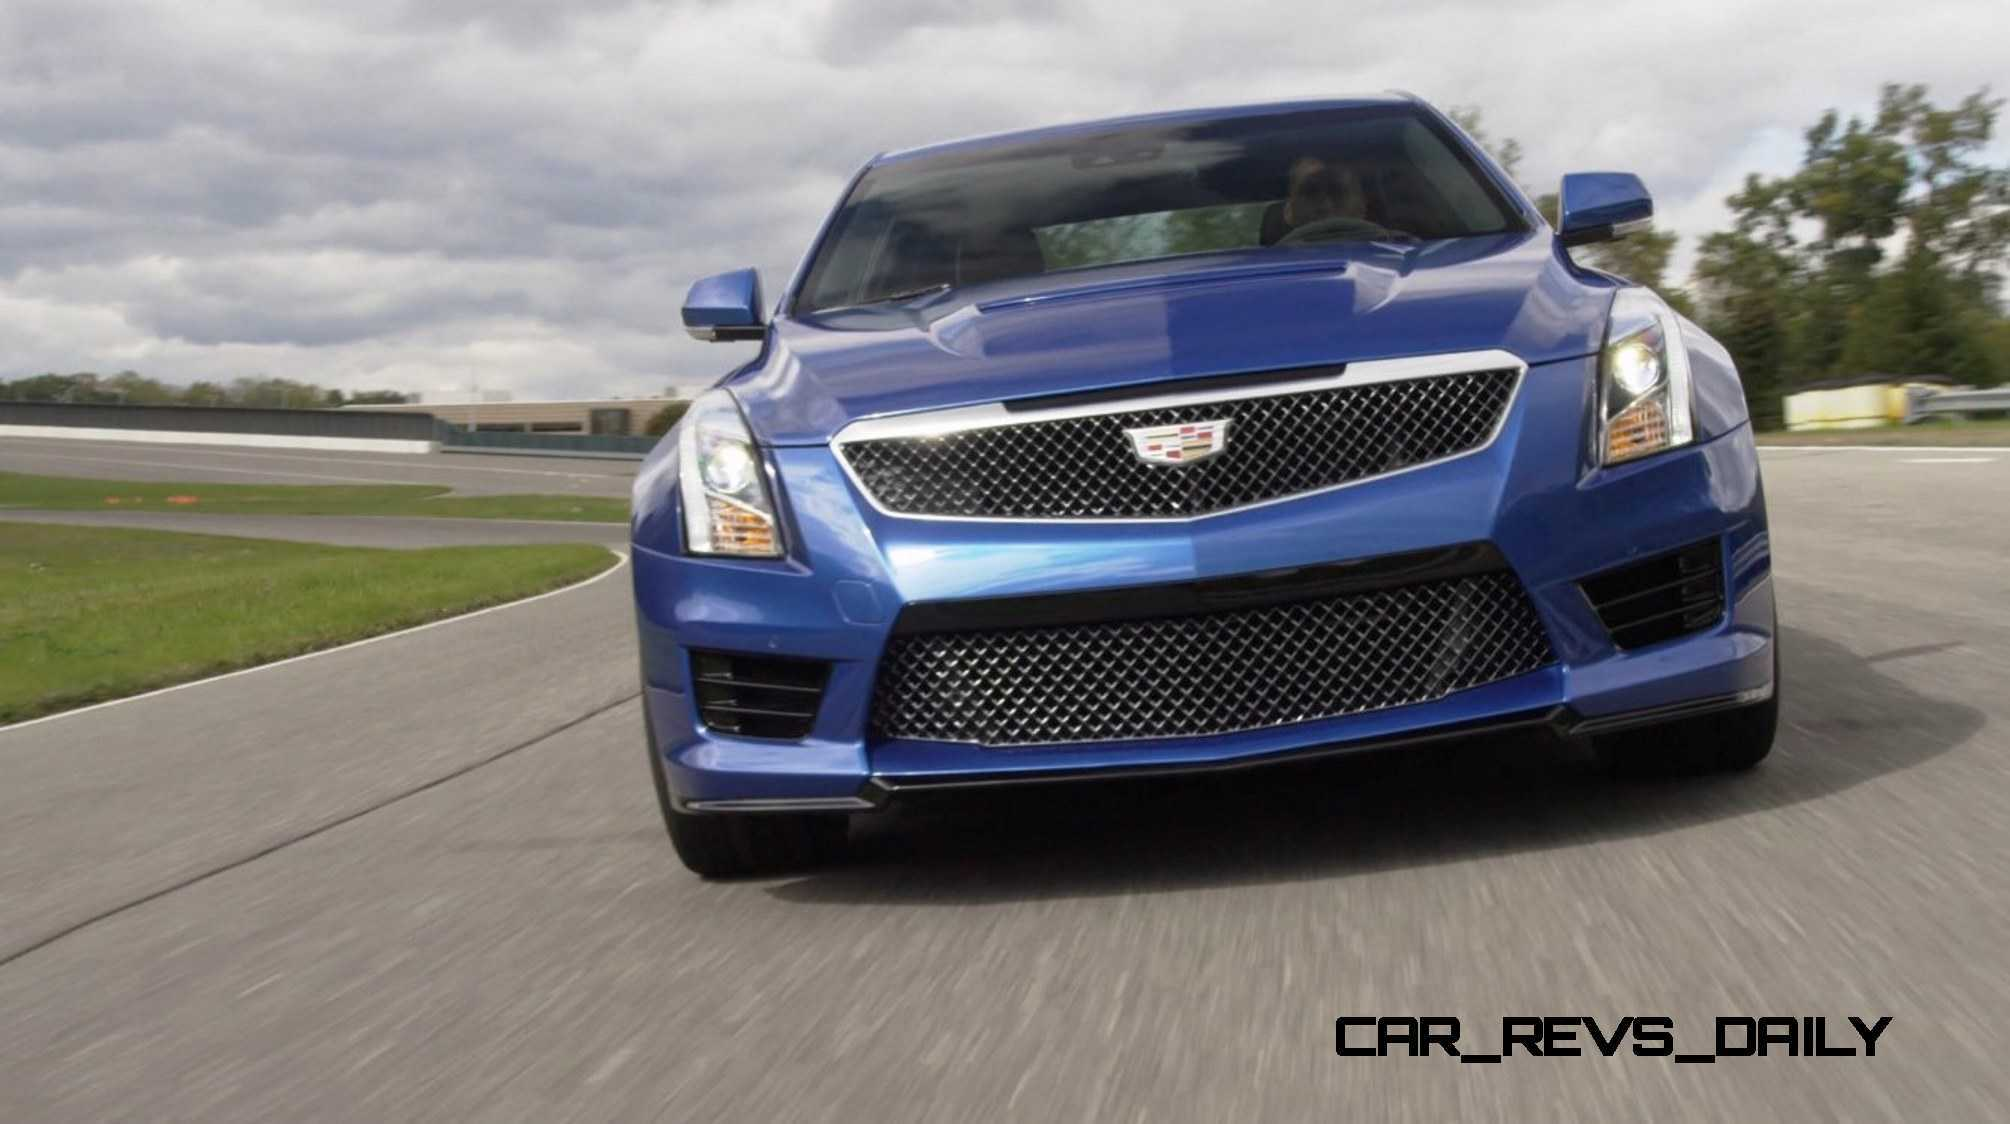 455hp 2016 cadillac ats v coupe and sedan are twin turbo elsd rocketships. Black Bedroom Furniture Sets. Home Design Ideas